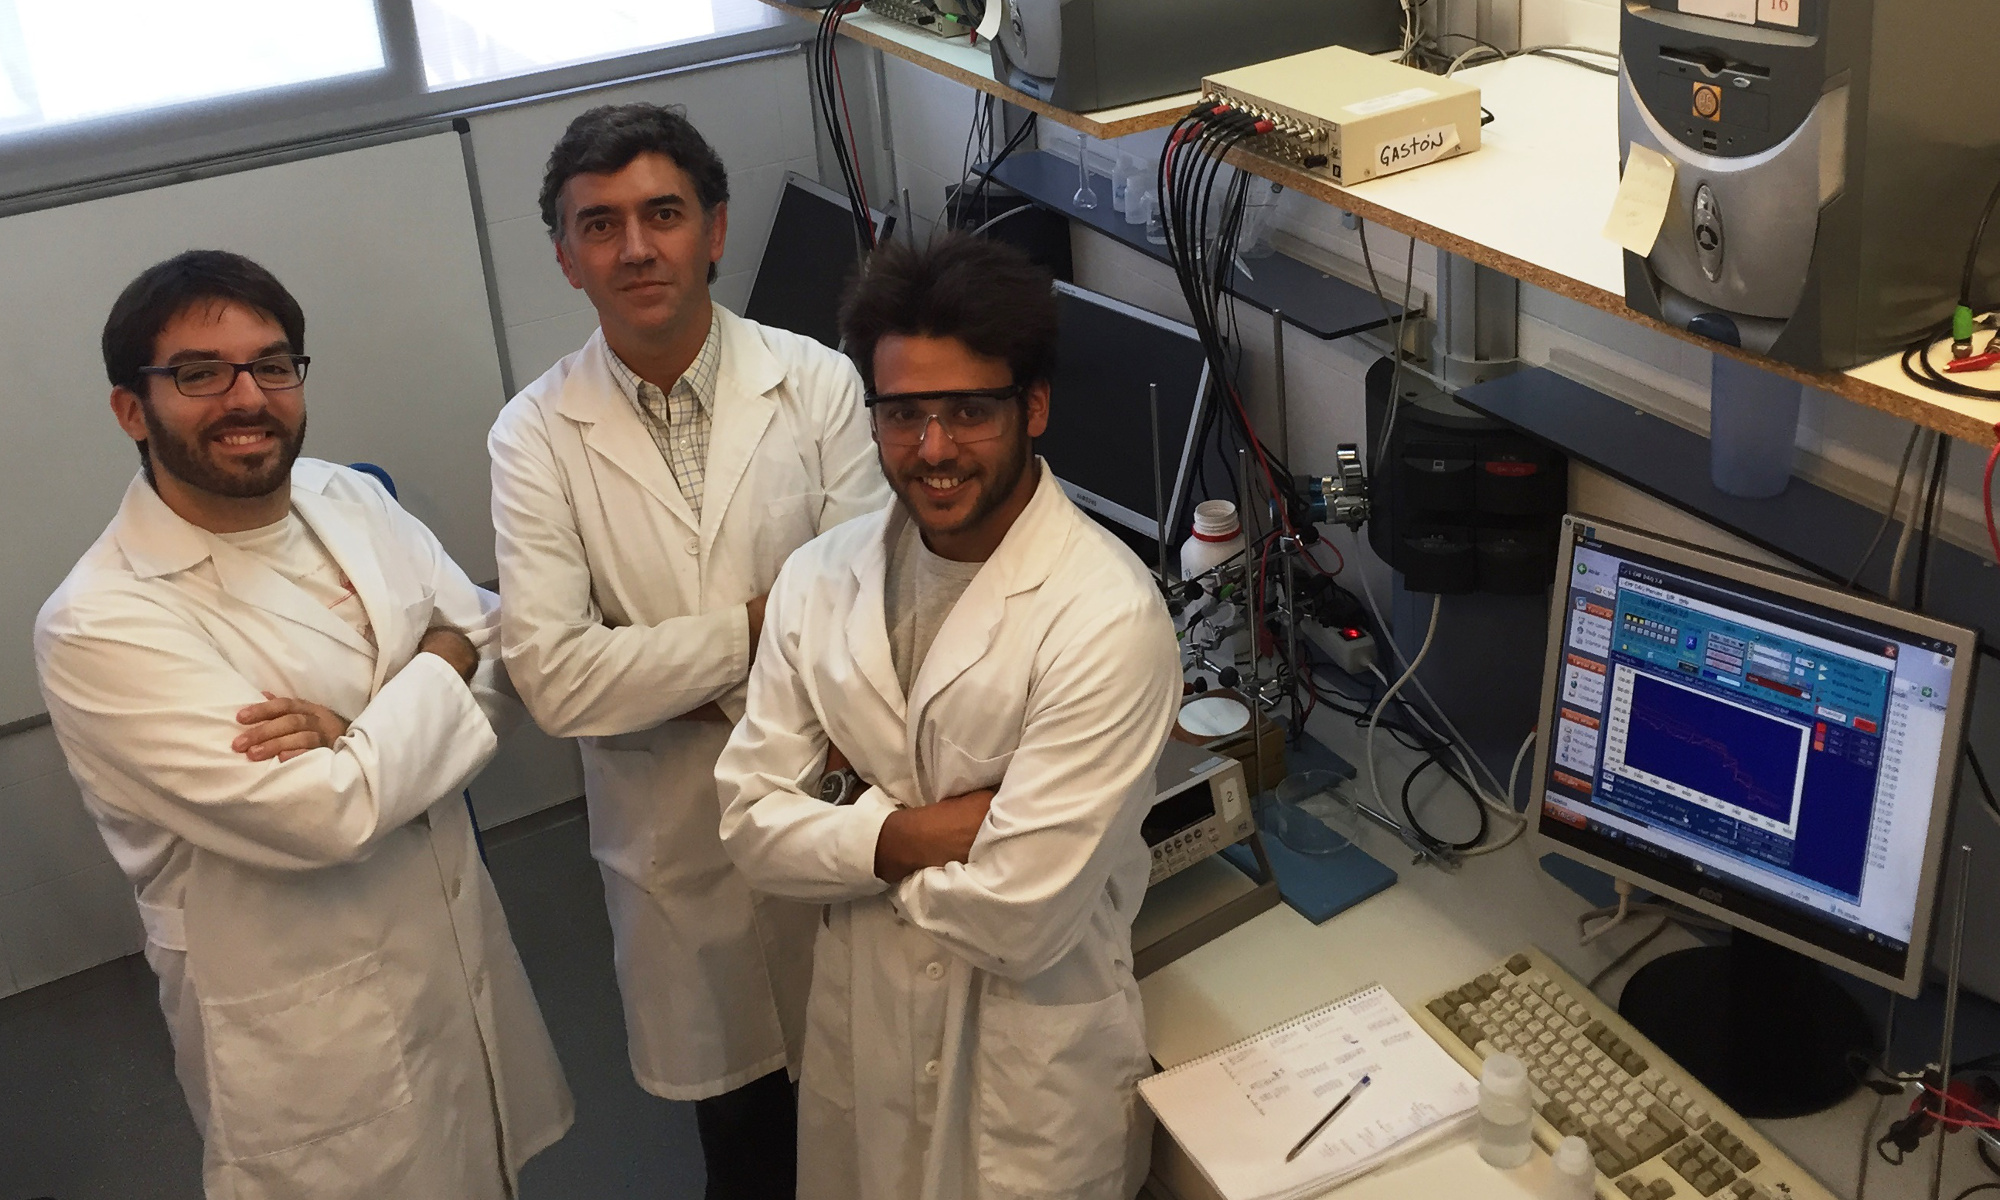 Ph.D. Tomàs Guinovart, Mr. Jordi Ferré and Professor F. Andrade at laboratory.